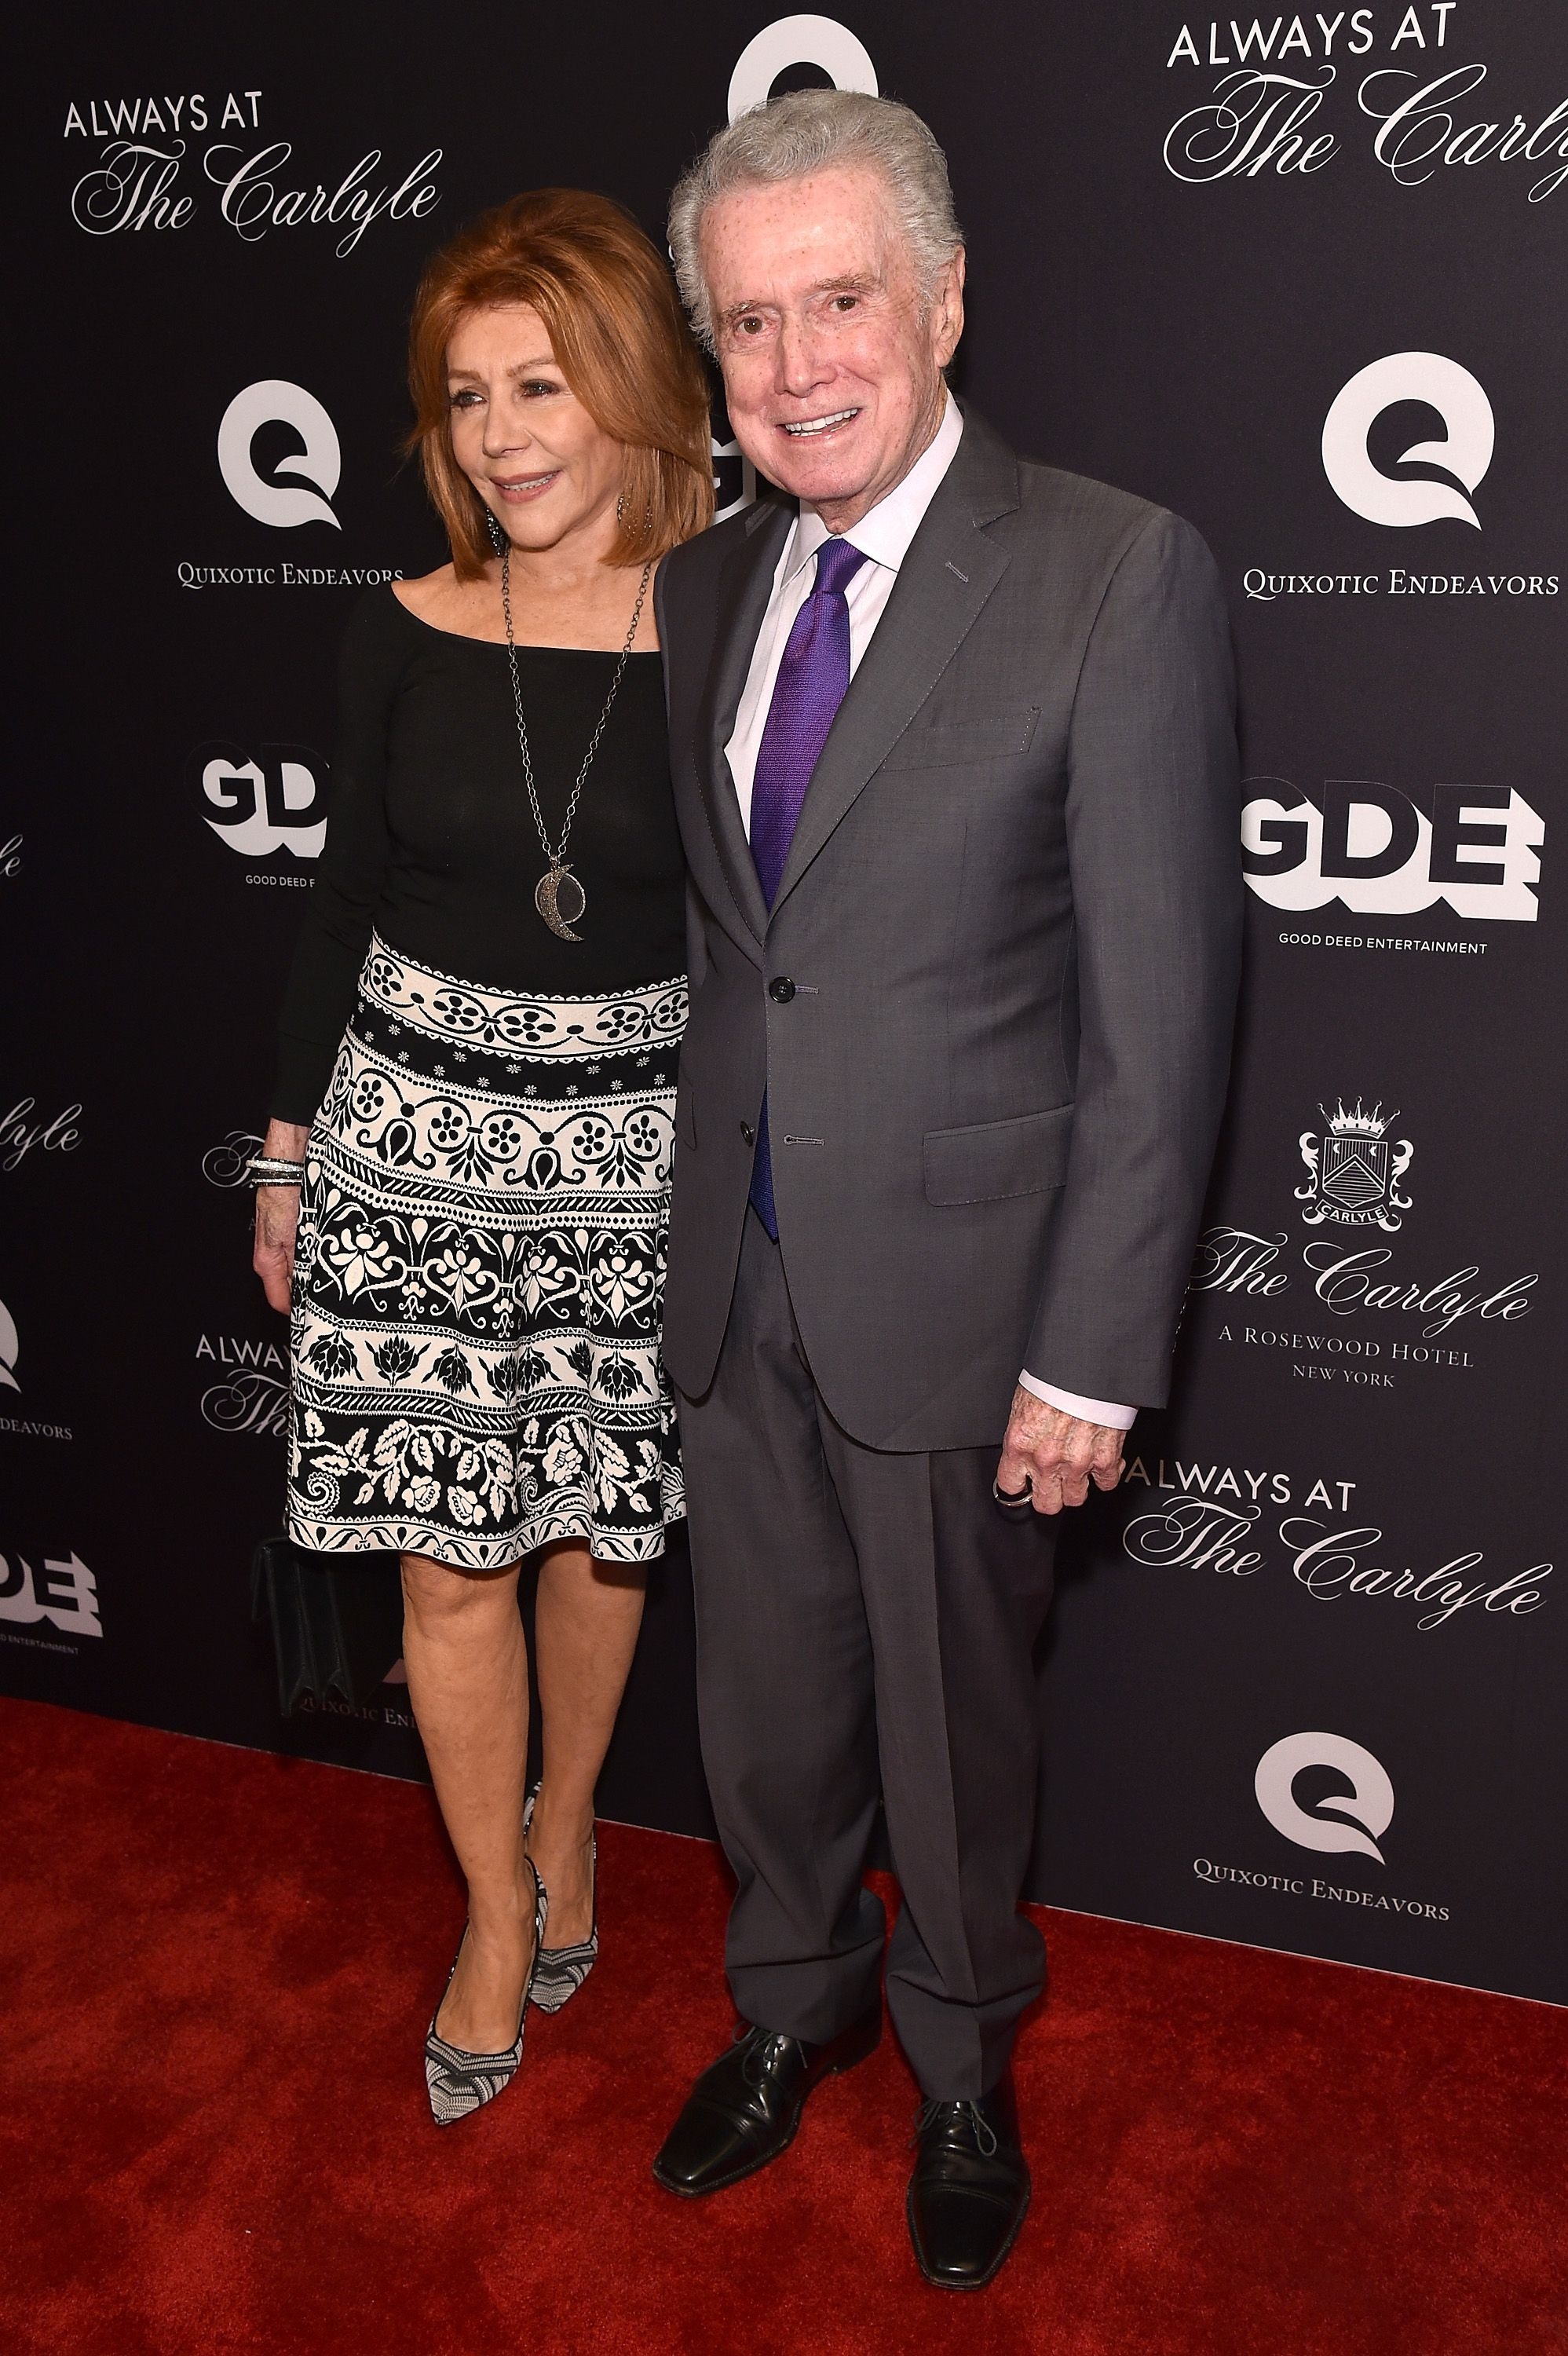 Regis Philbin mit seiner Frau Joy Philbin bei der Always At The Carlyle Premierein New York City | Quelle: Bryan Bedder/Getty Images for Always at the Carlyle